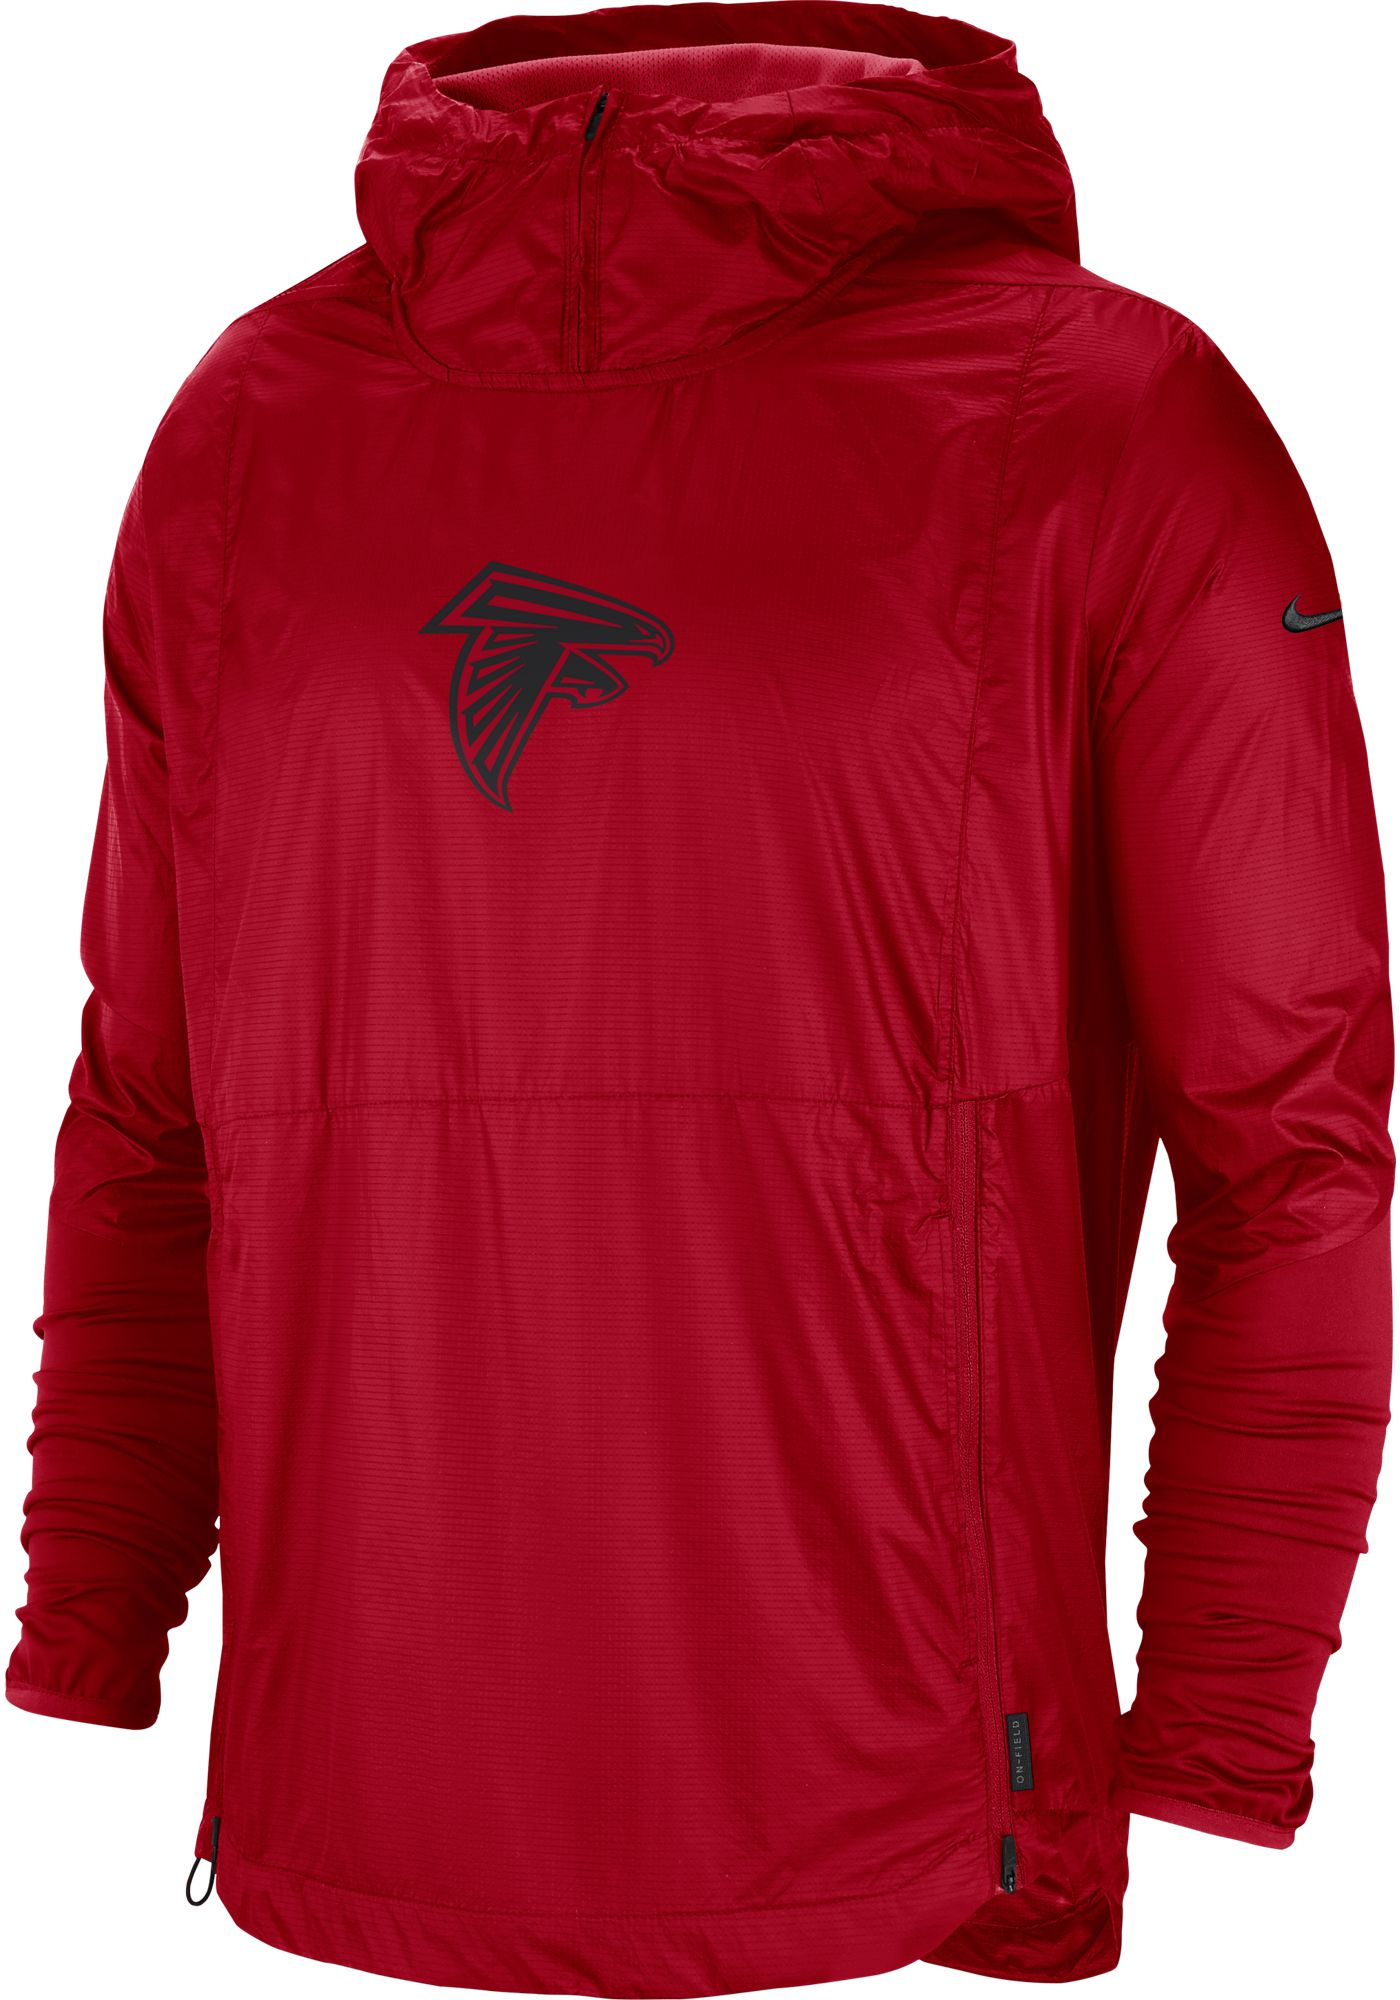 Nike Men's Atlanta Falcons Sideline Repel Player Red Jacket